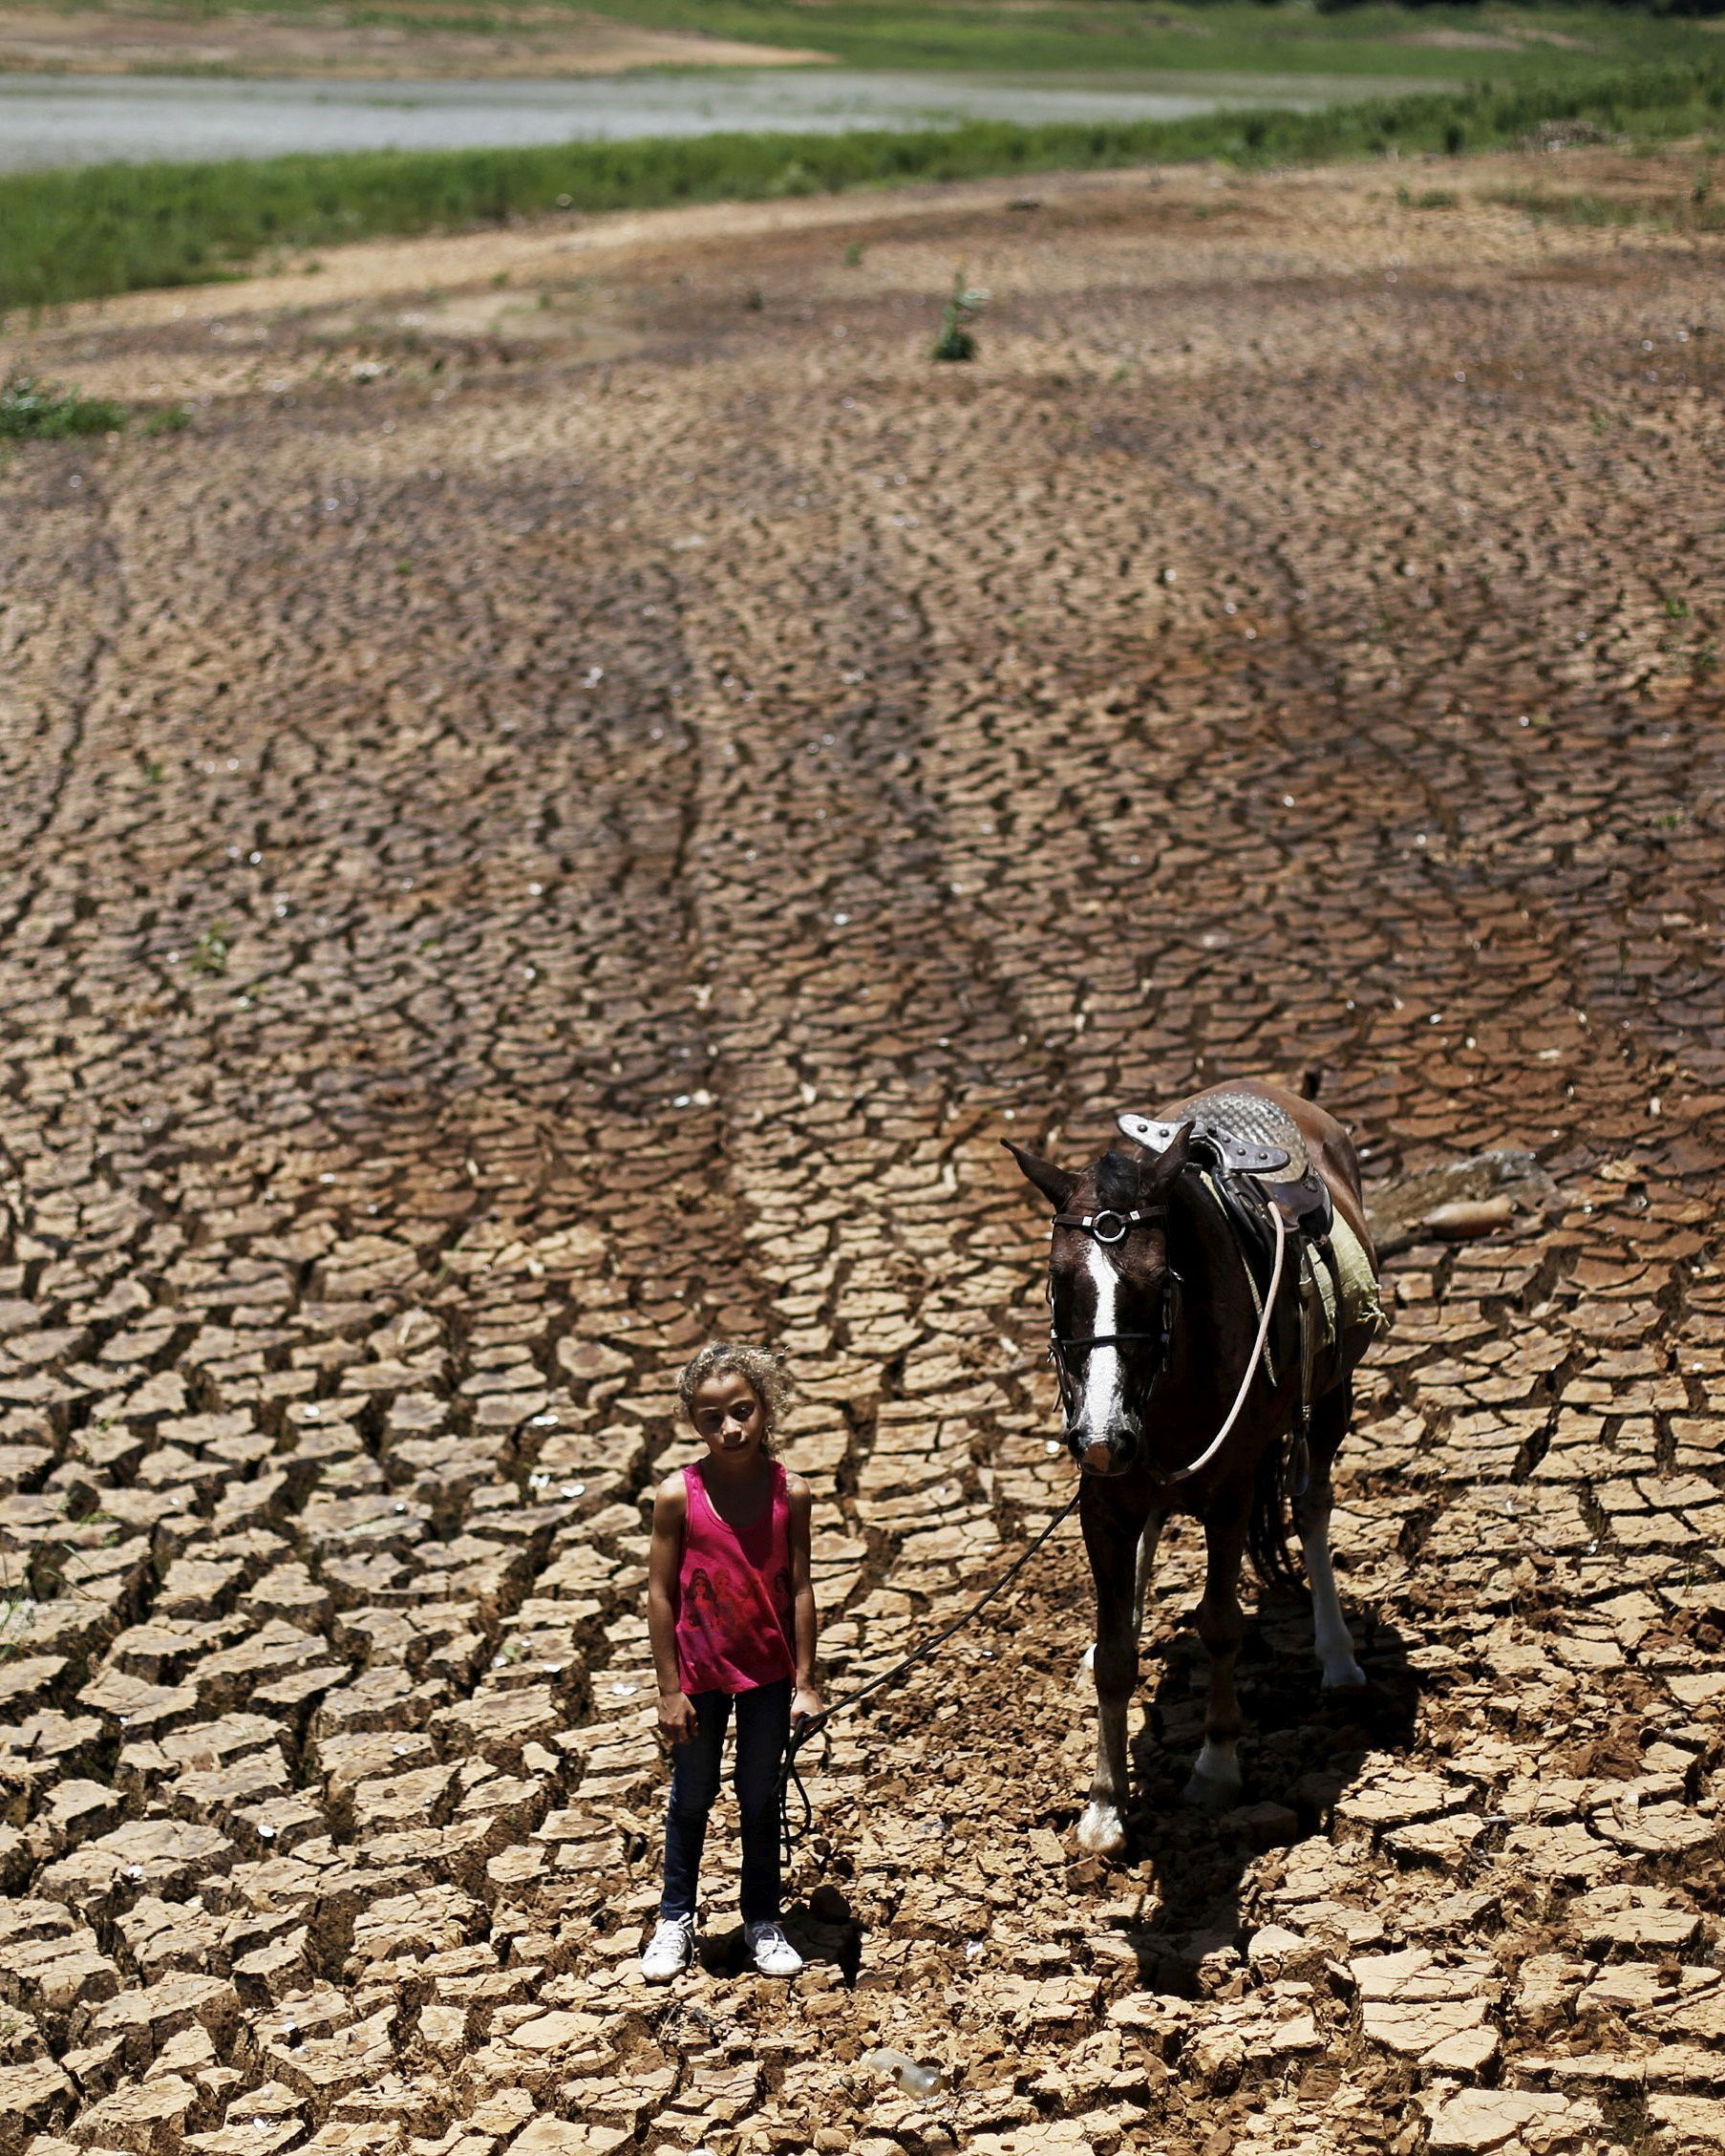 cracked ground brazil drought